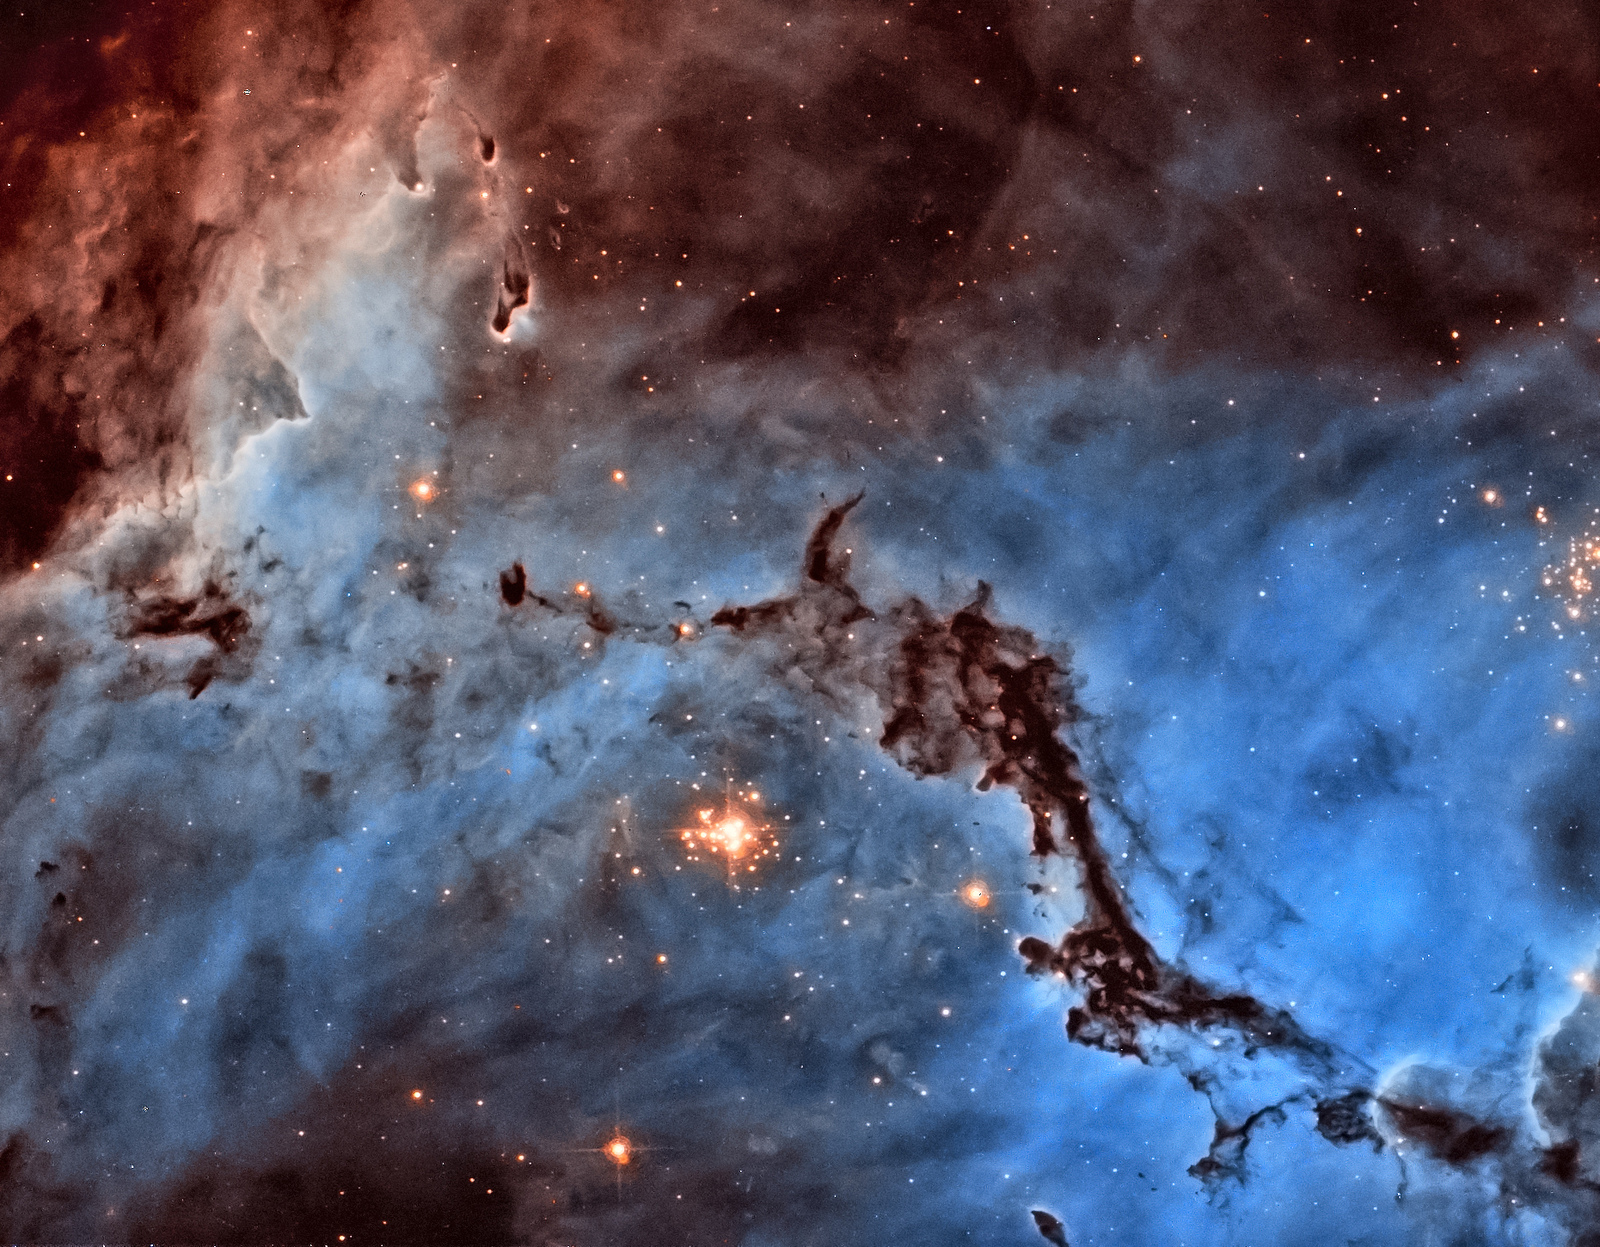 Stunning Hubble Telescope 'Hidden Treasures' Revealed in Photo Contest